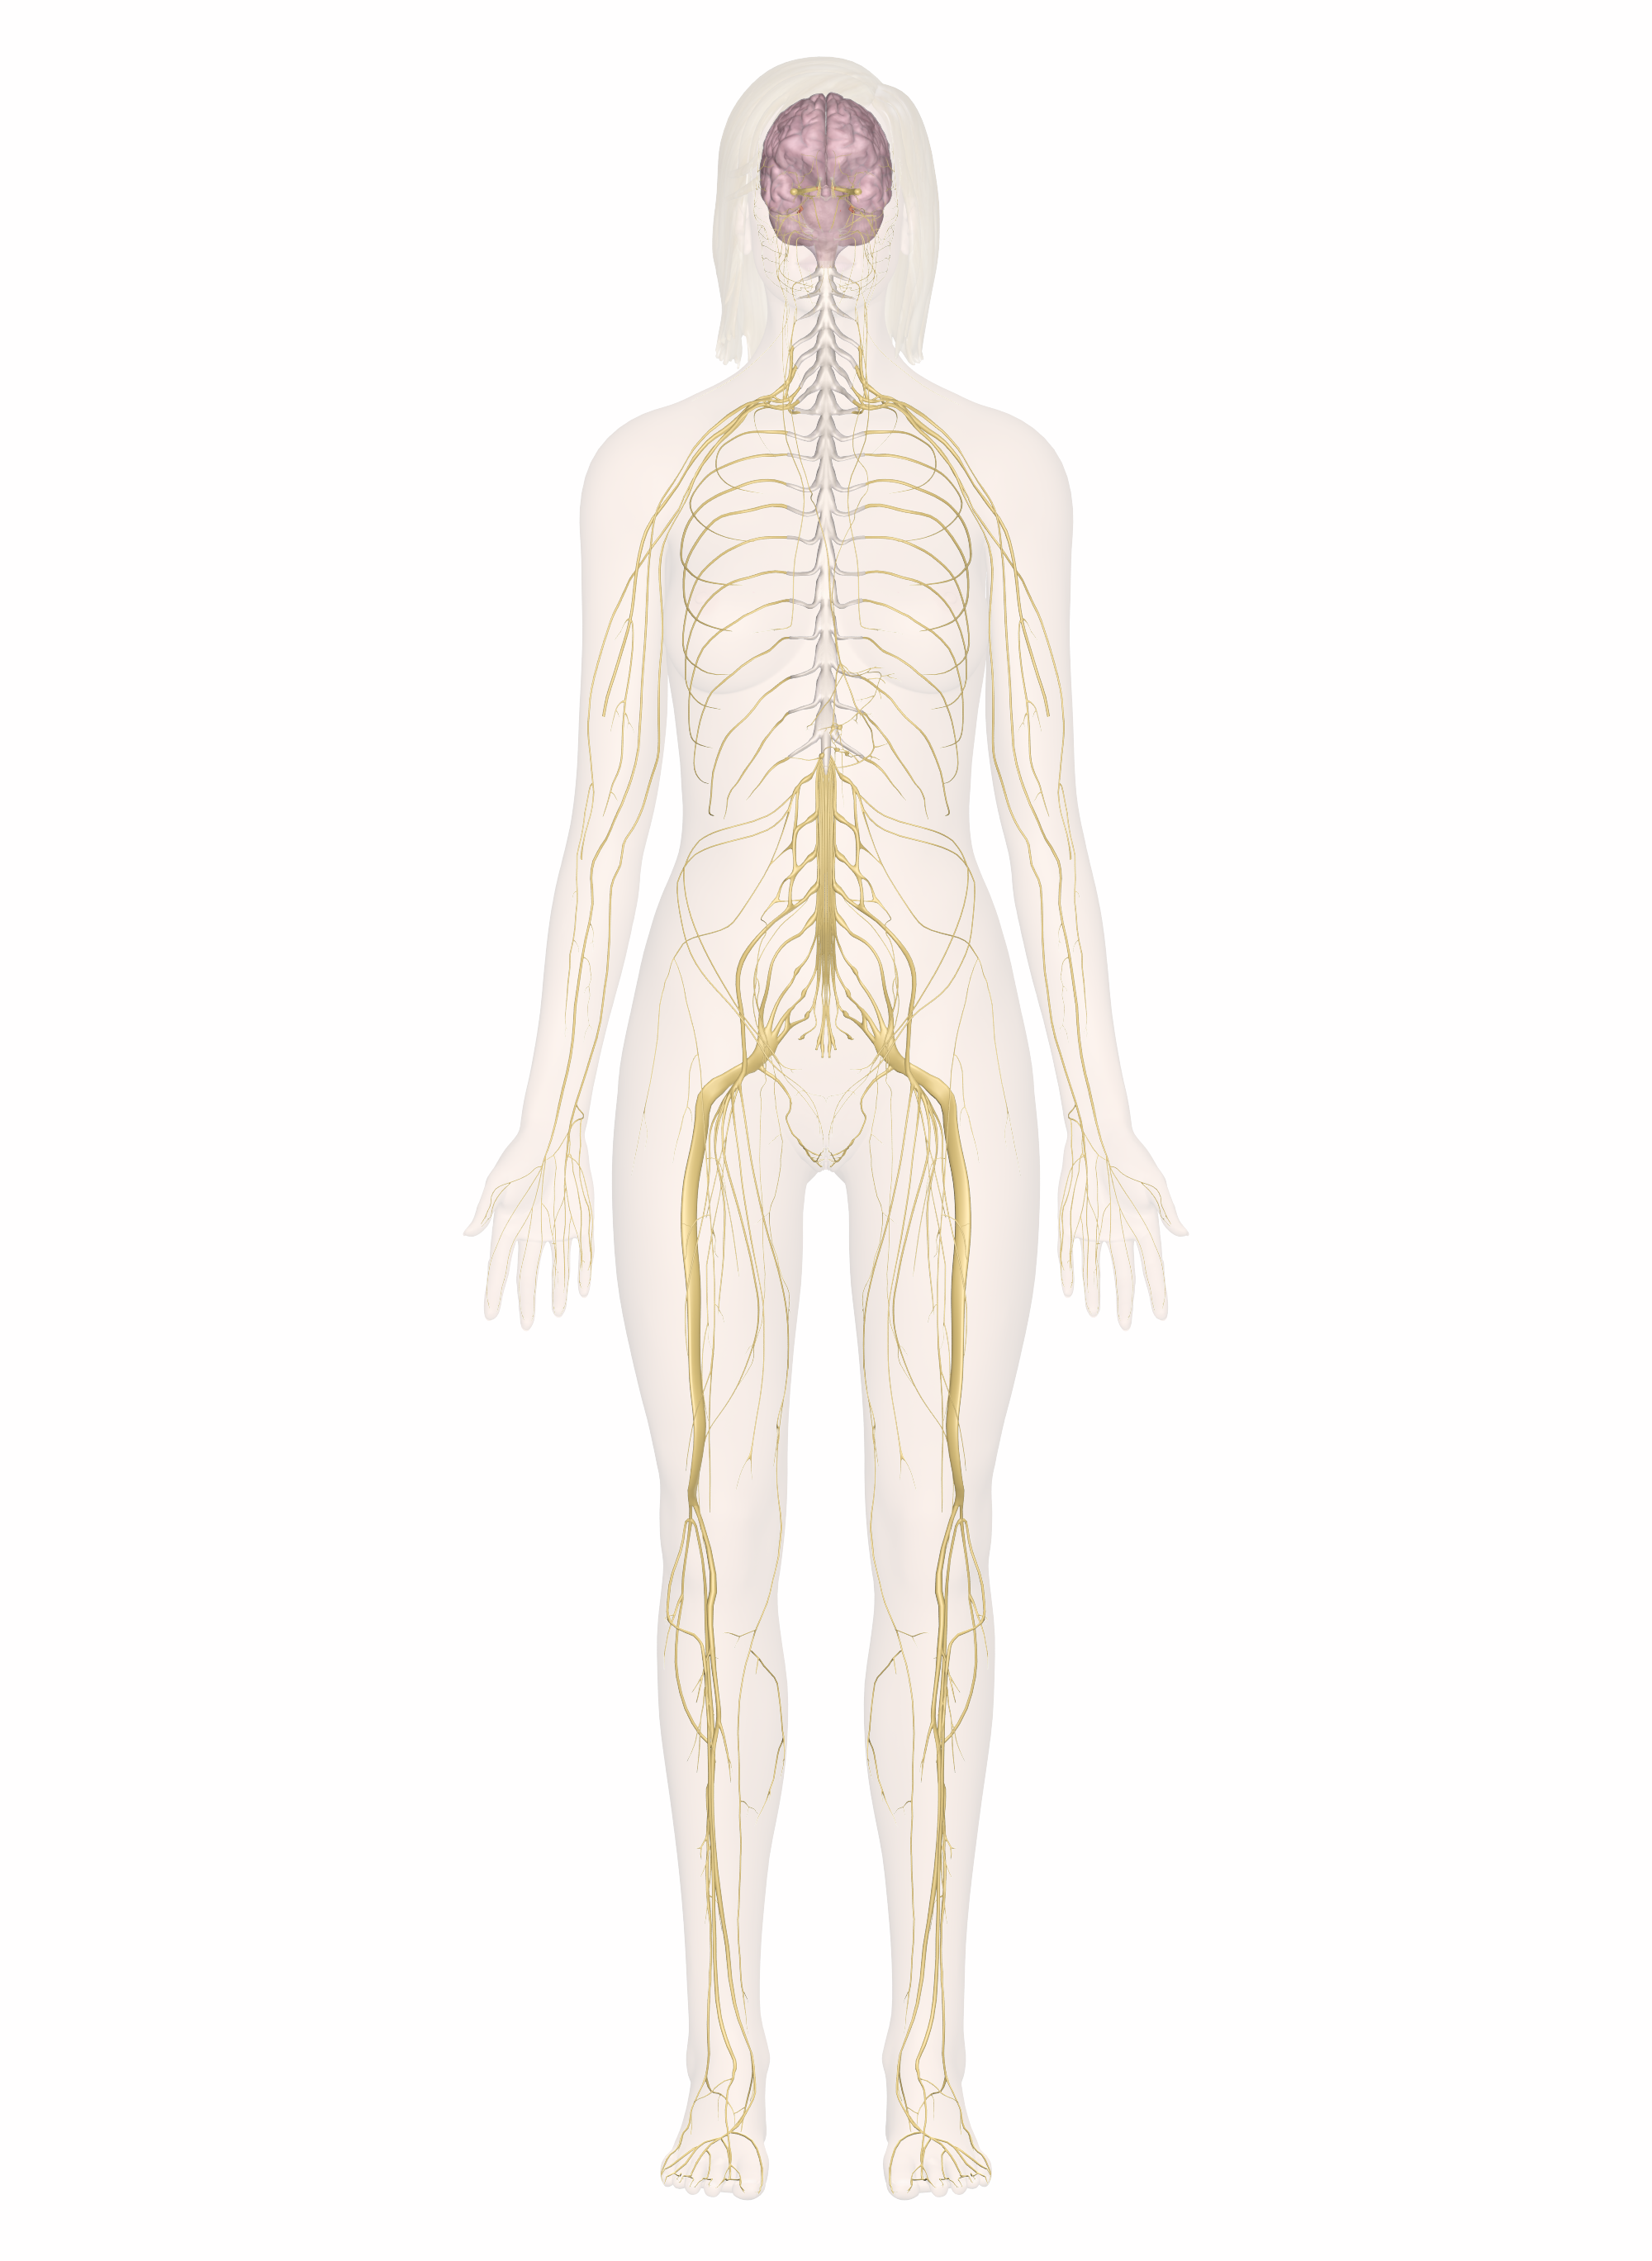 Nervous System: Explore the Nerves with Interactive Anatomy.